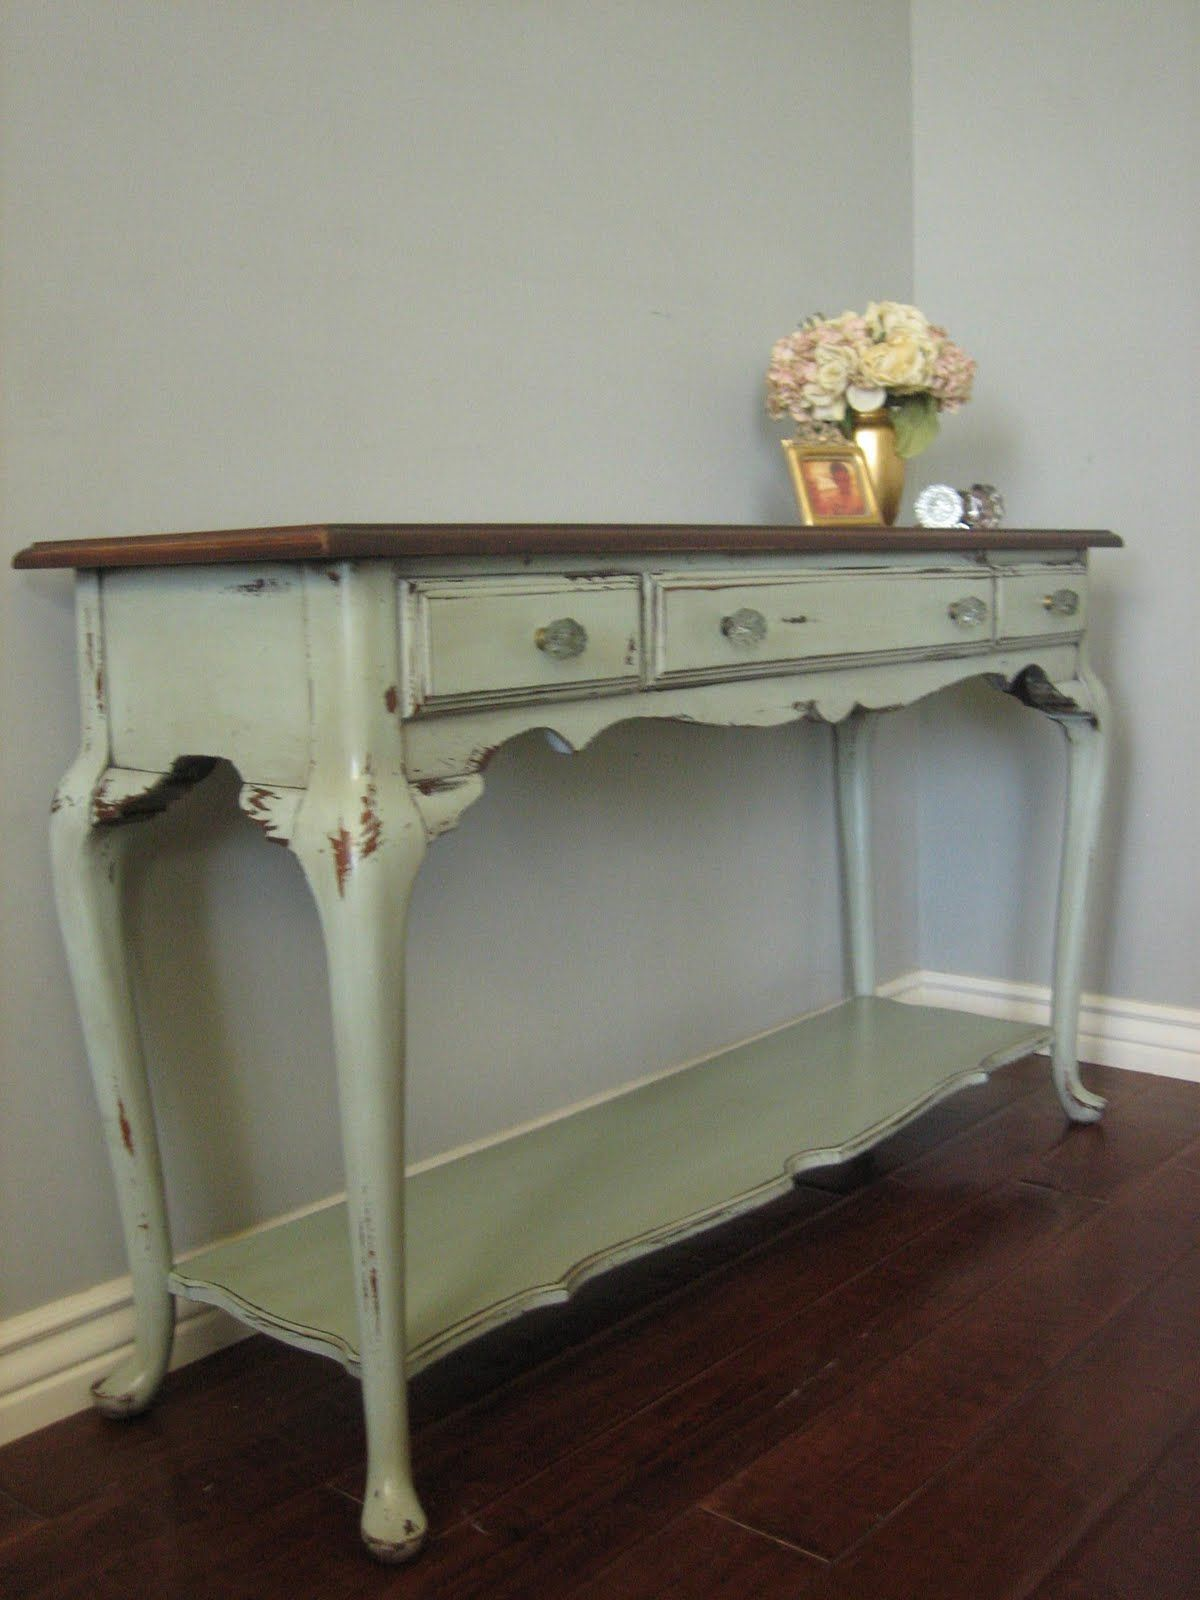 Turquoise Painted Furniture With Green Accents Country Cottage Queen Ann Refinished Furniture Euro Euro Shabby Chic Sofa Refinishing Furniture Chic Furniture